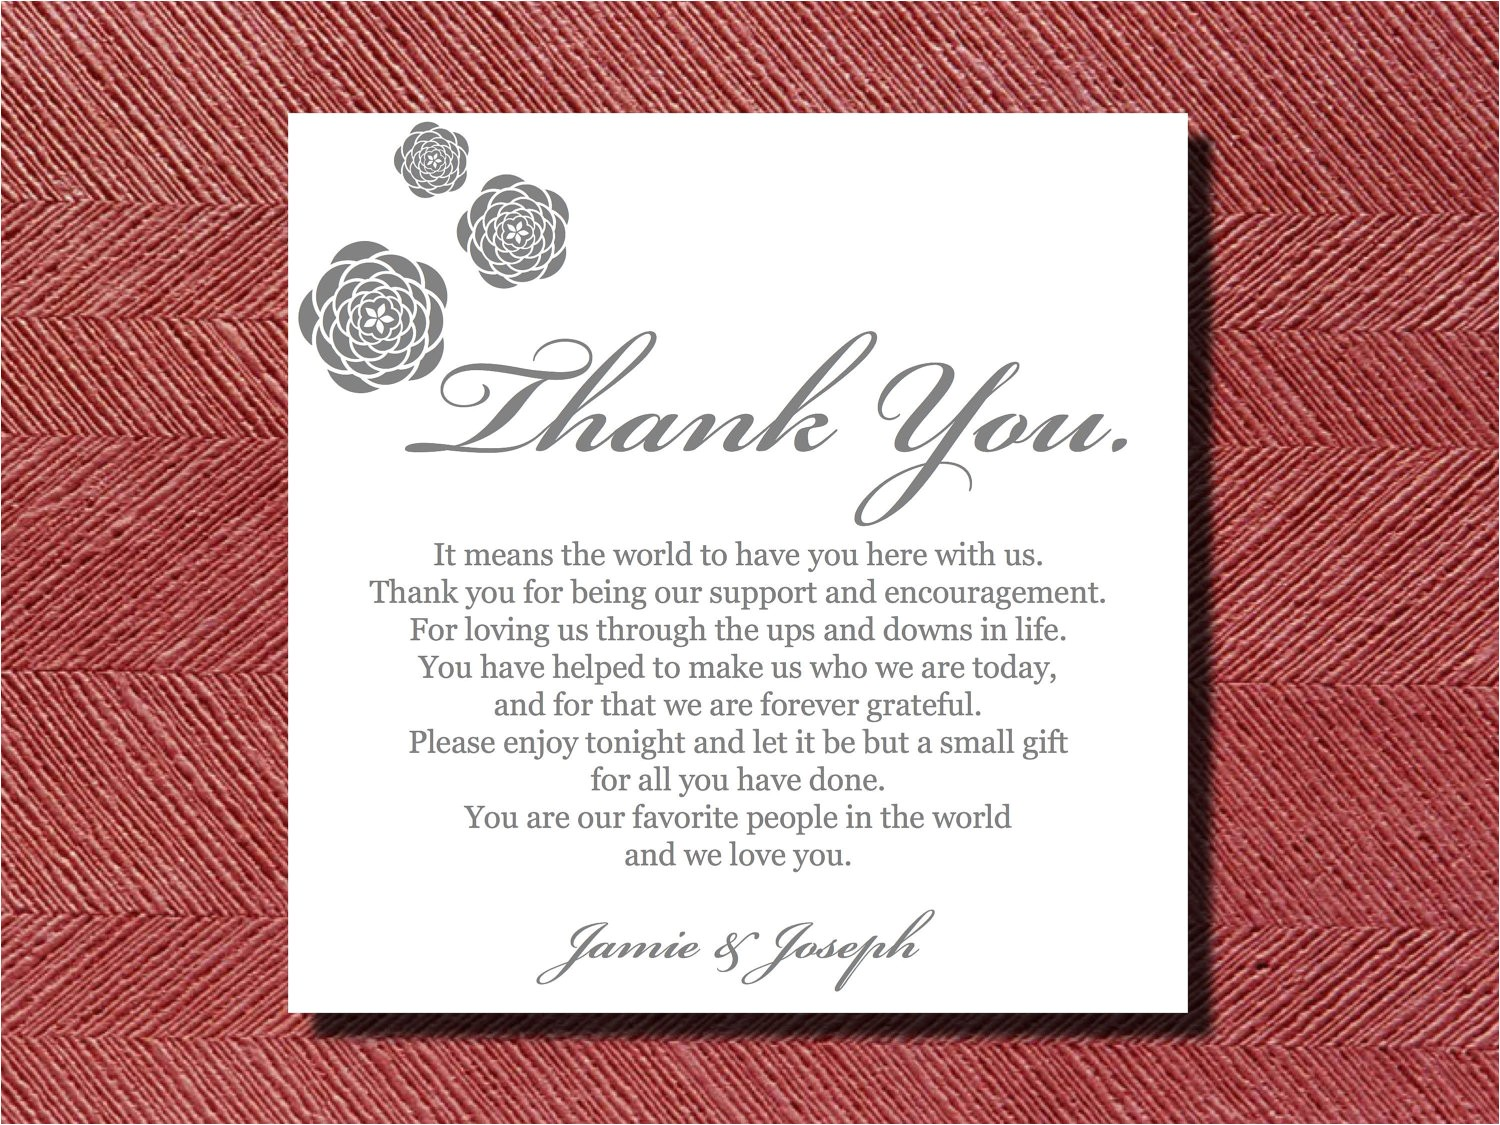 sample wedding invitations and thank you cards collection adjustable themes motive ideas